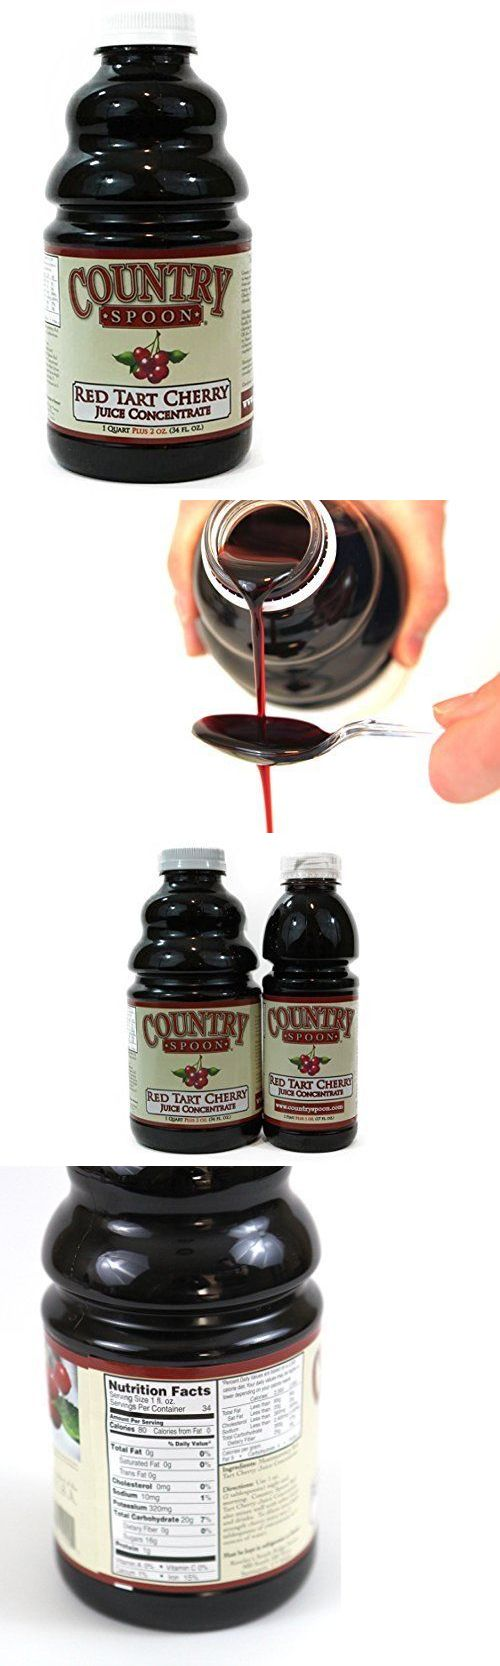 Fruit Juices 179176: Country Spoon Montmorency Red Tart Cherry Juice Concentrate 34Oz, New -> BUY IT NOW ONLY: $31.5 on eBay!